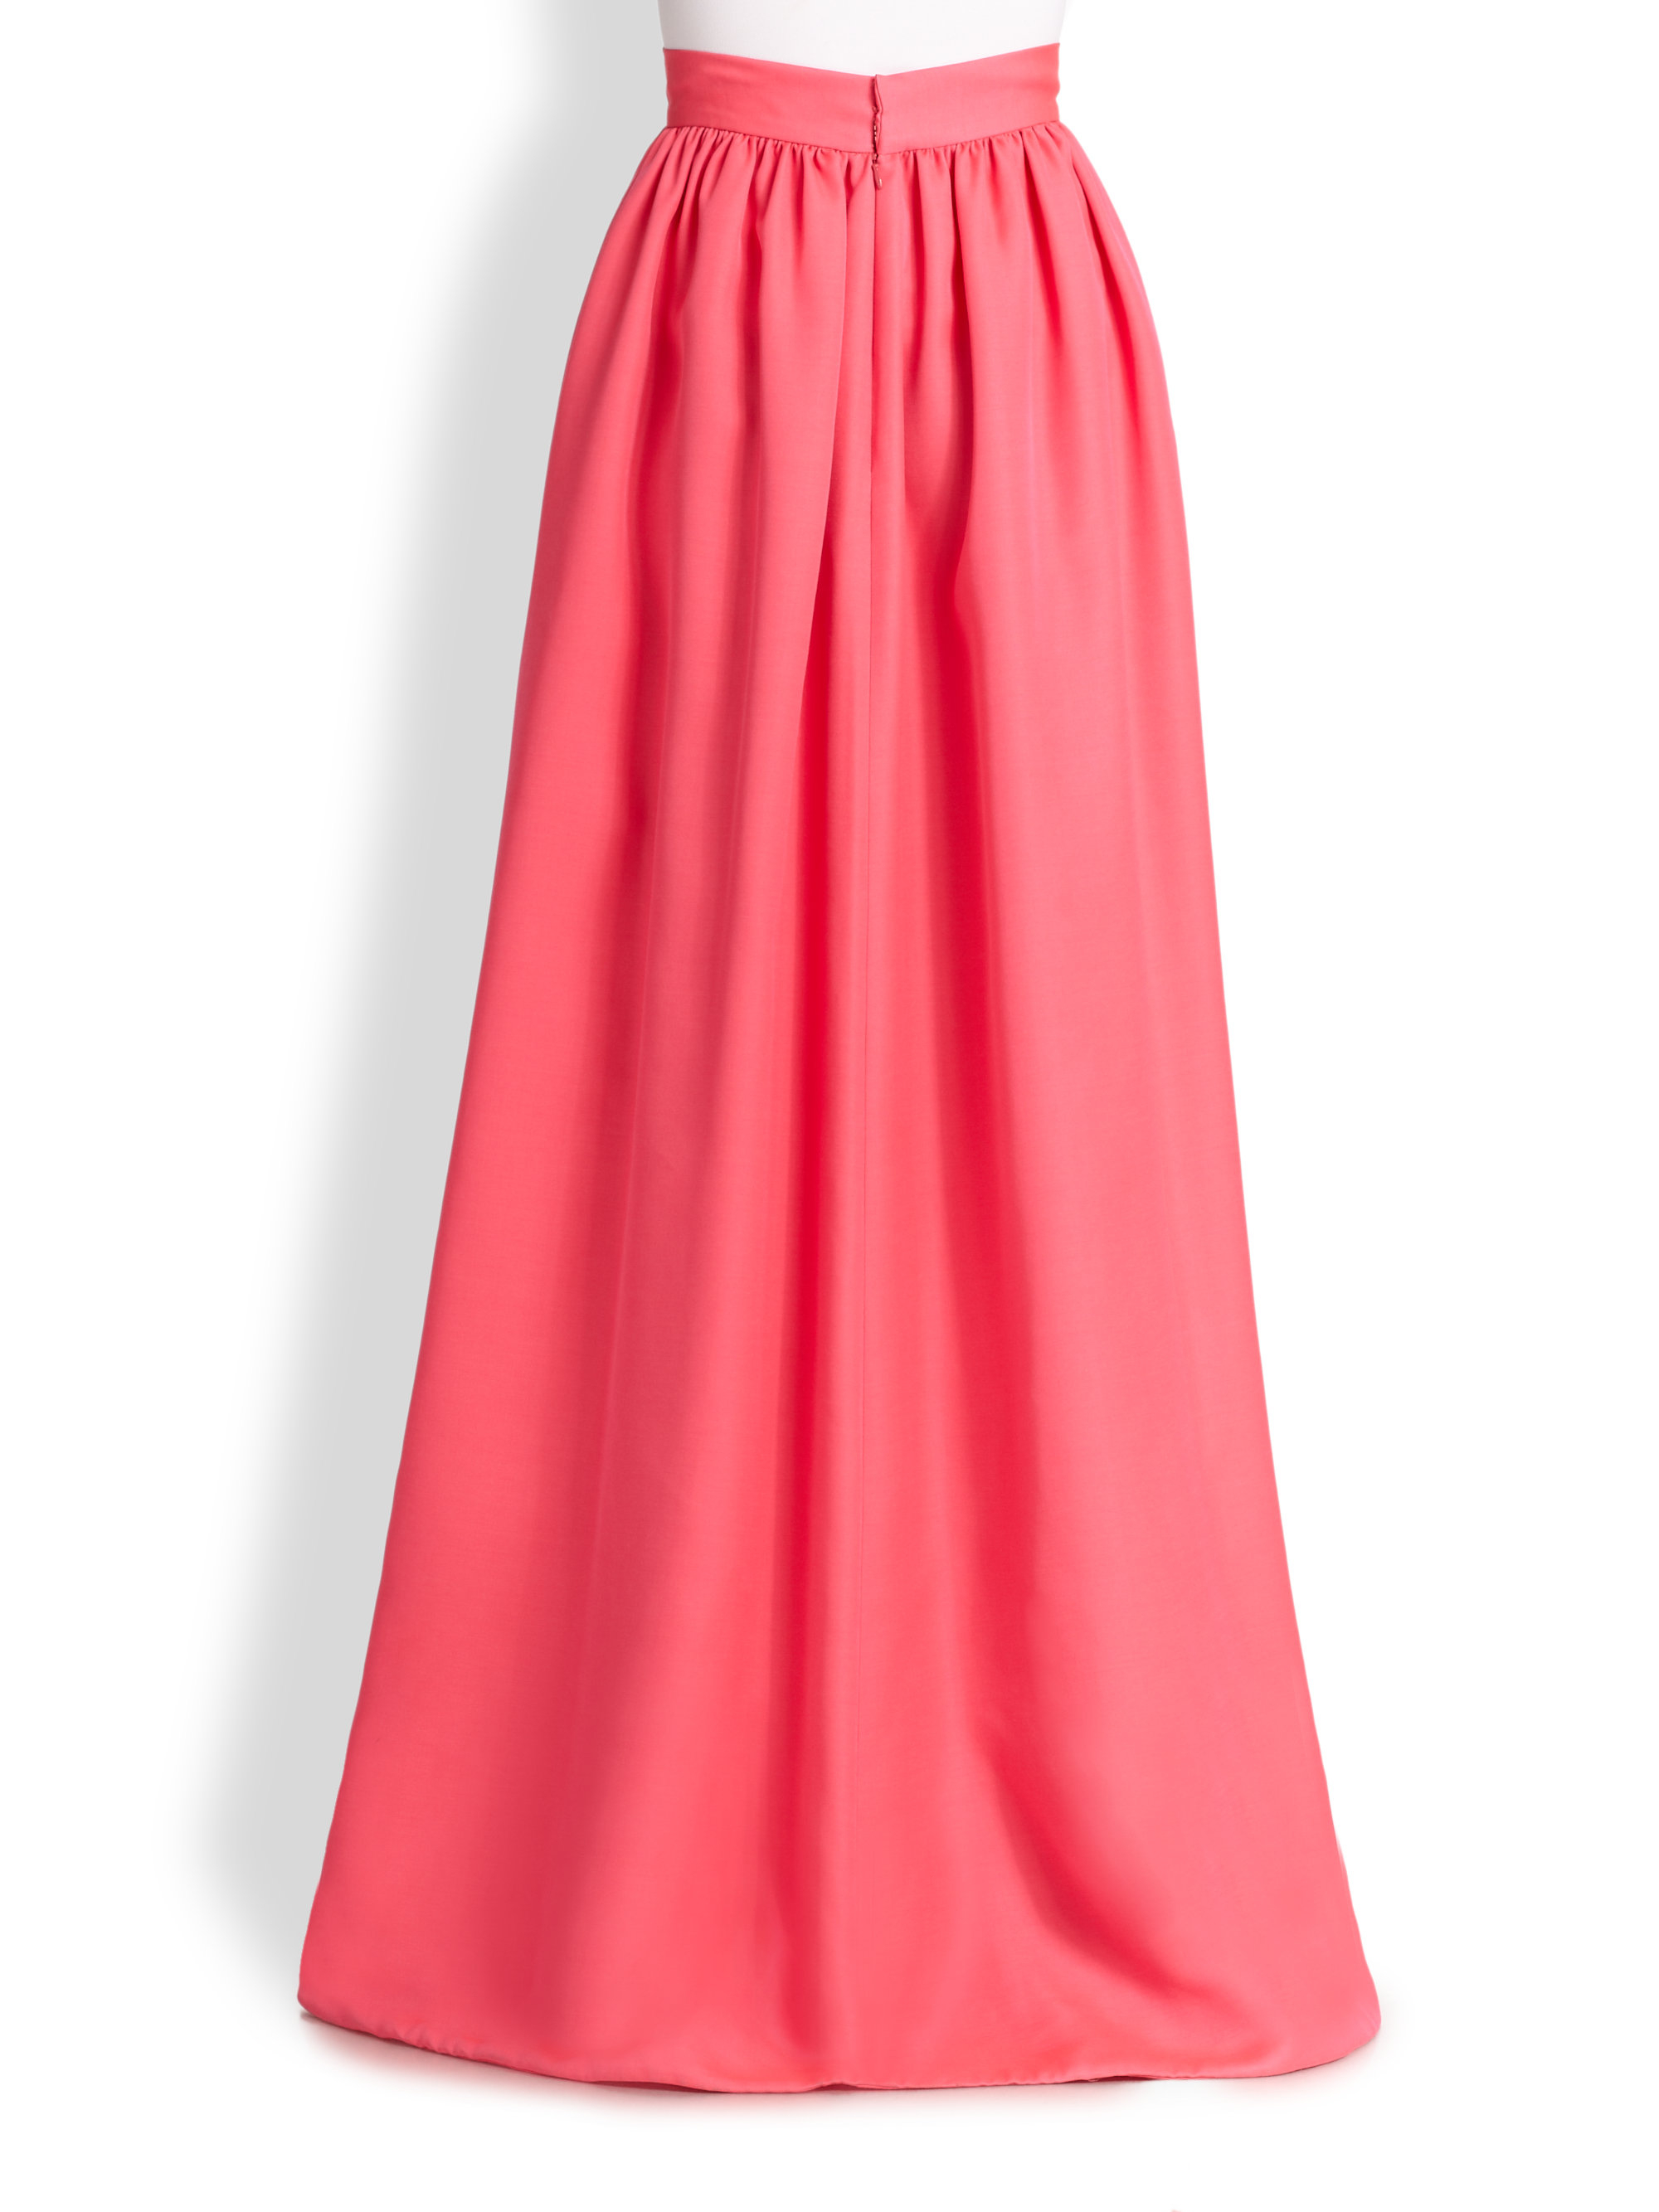 honor maxi skirt in pink neon pink